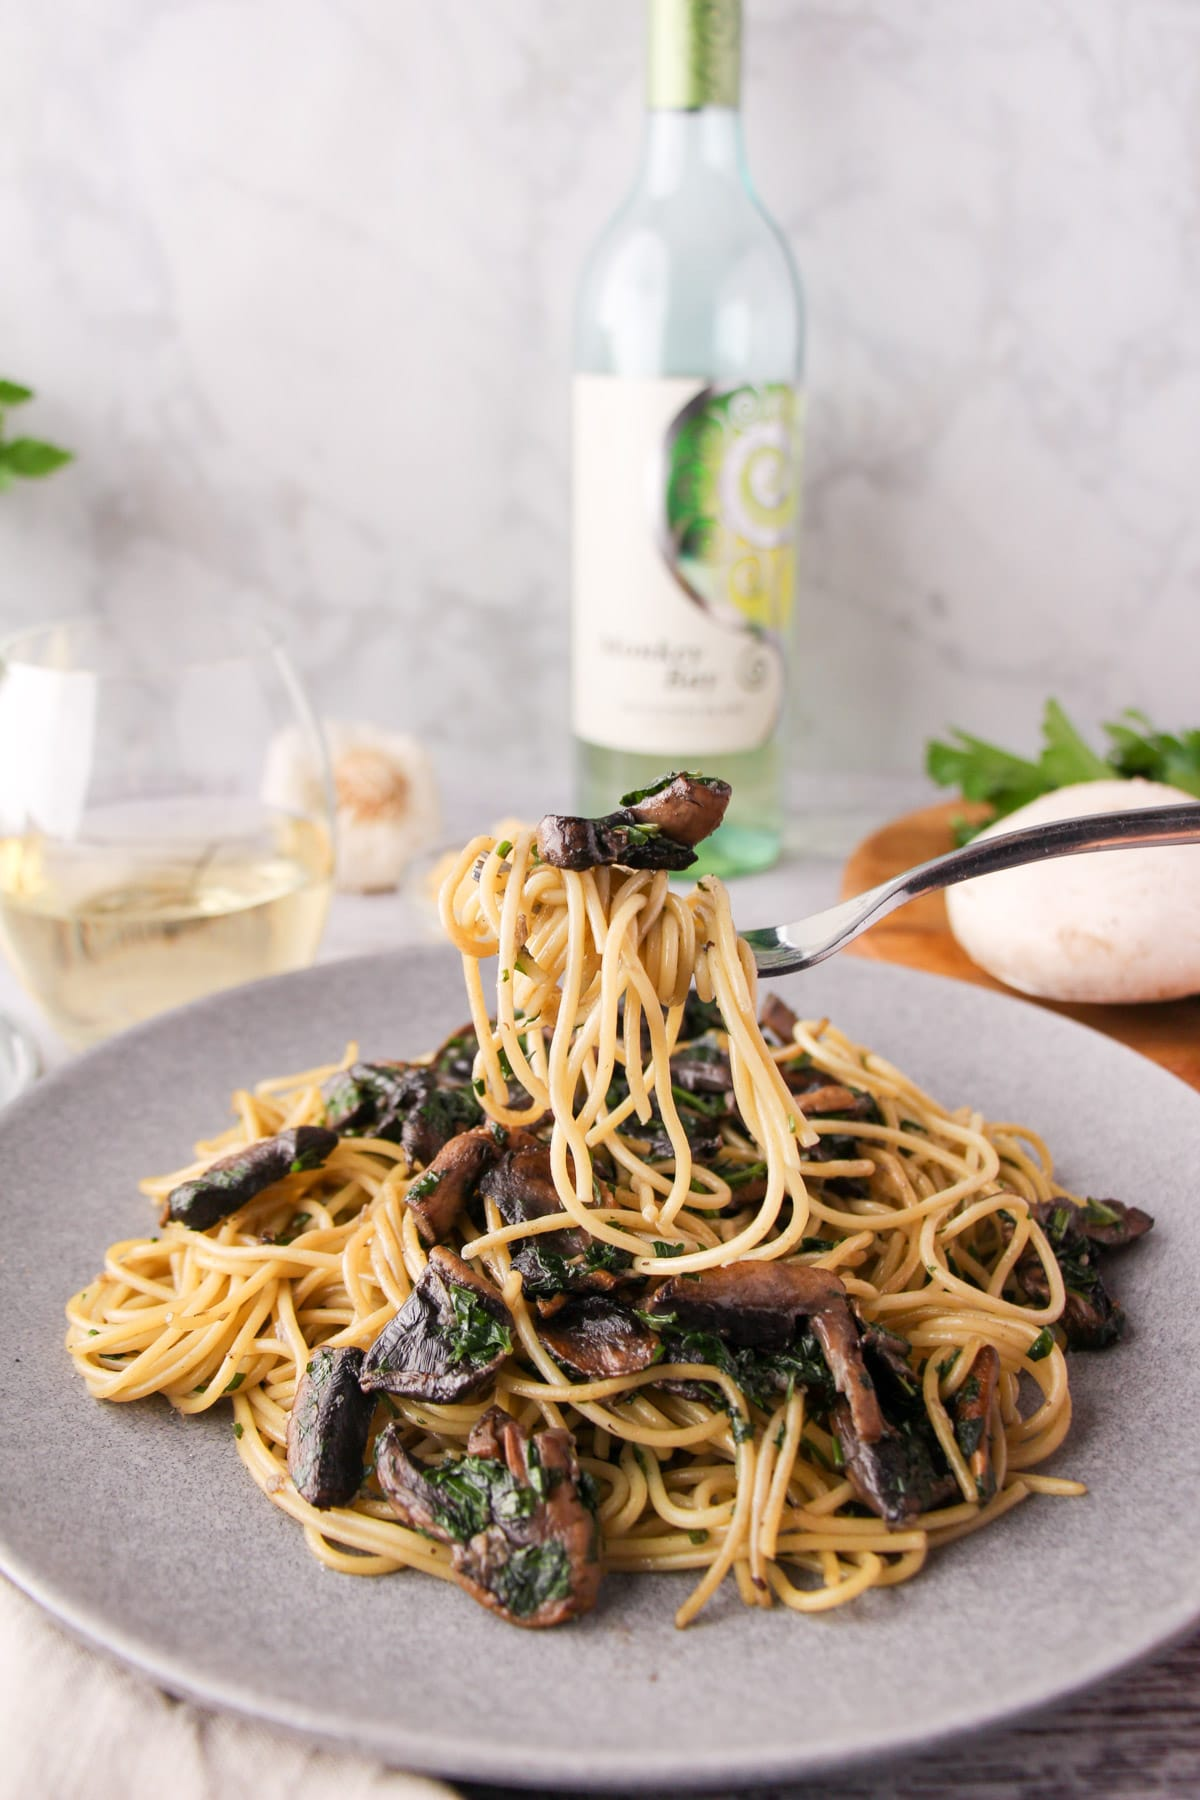 Fork of mushroom aglio olio held over a plate of pasta, with fresh mushrooms, parsley, garlic and a glass and bottle of white wine the background.